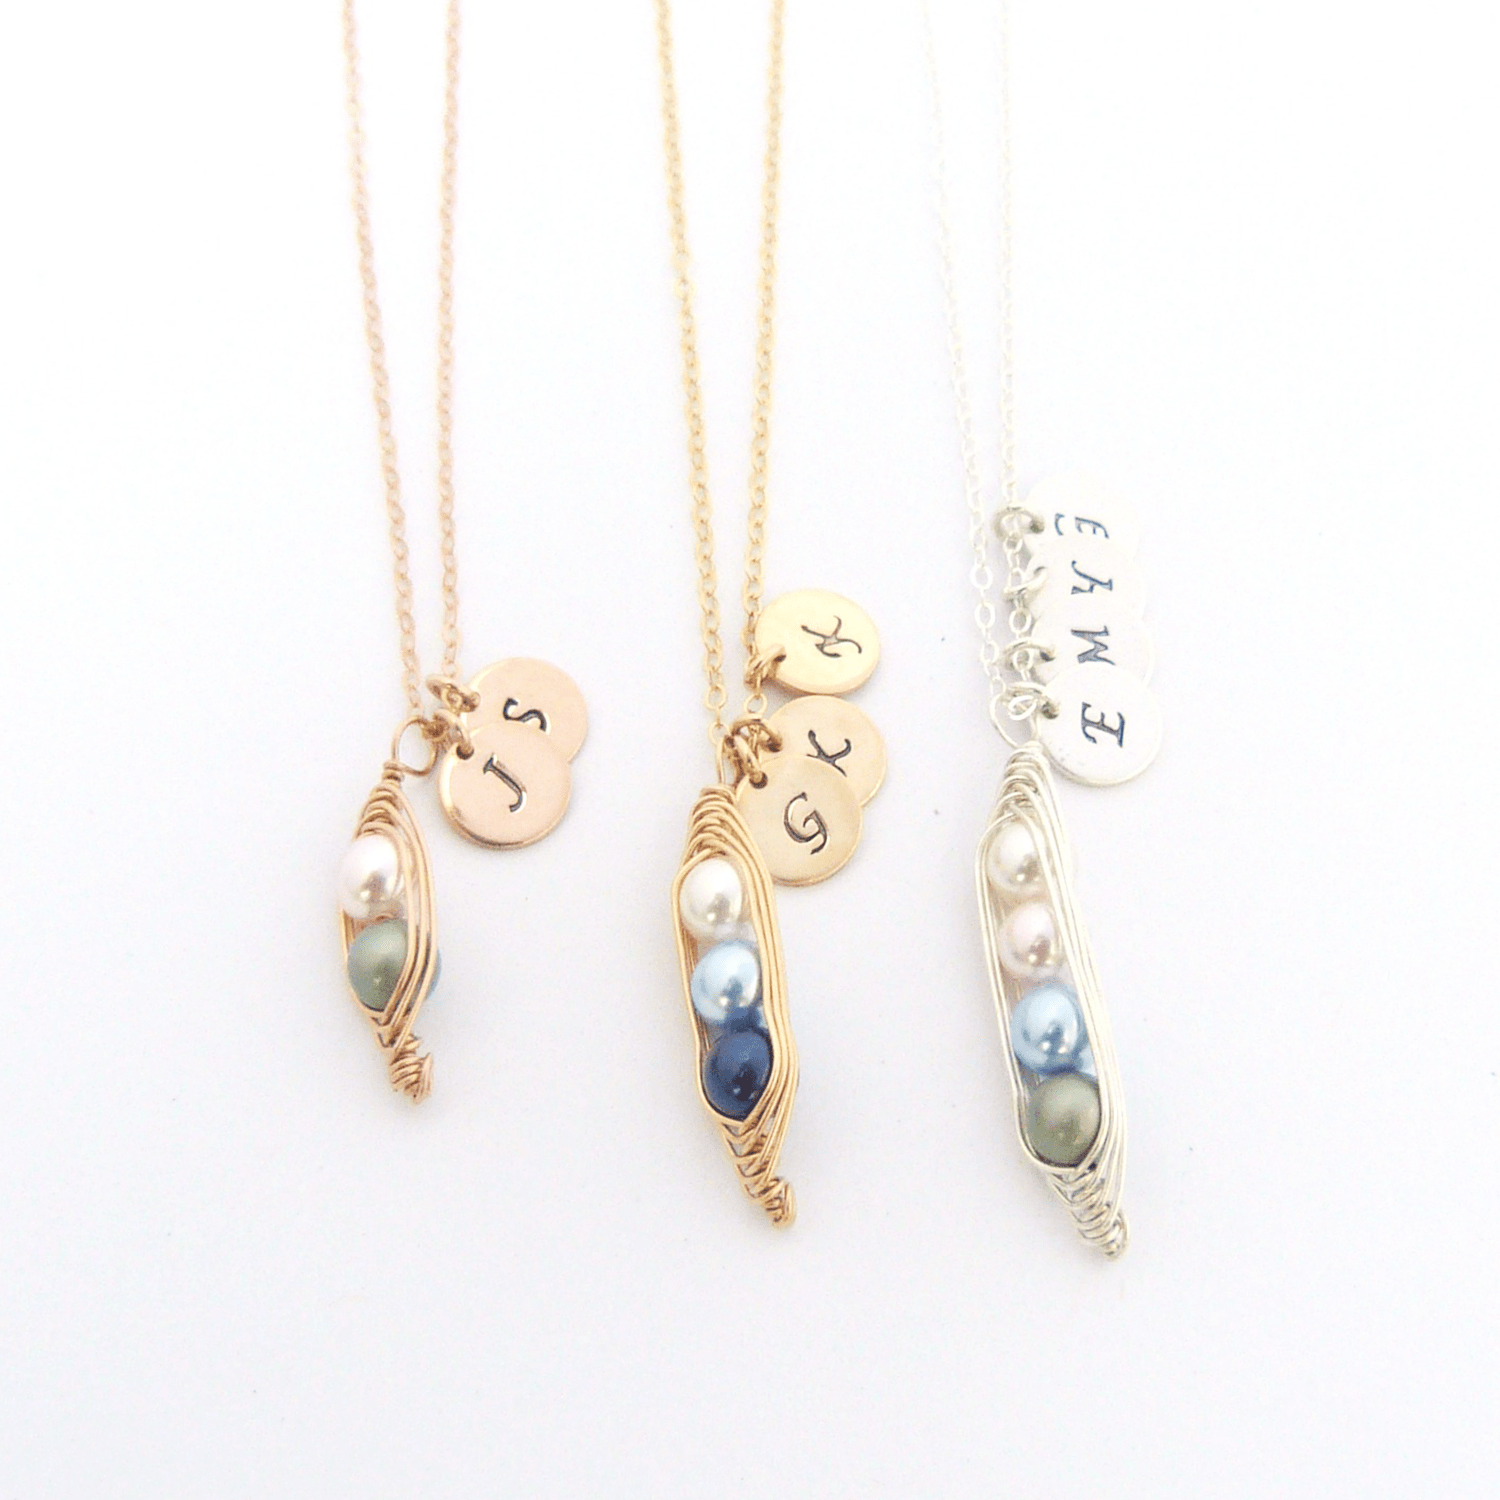 Personalized Peas In A Pod Necklace - Jennifer Stone Co.